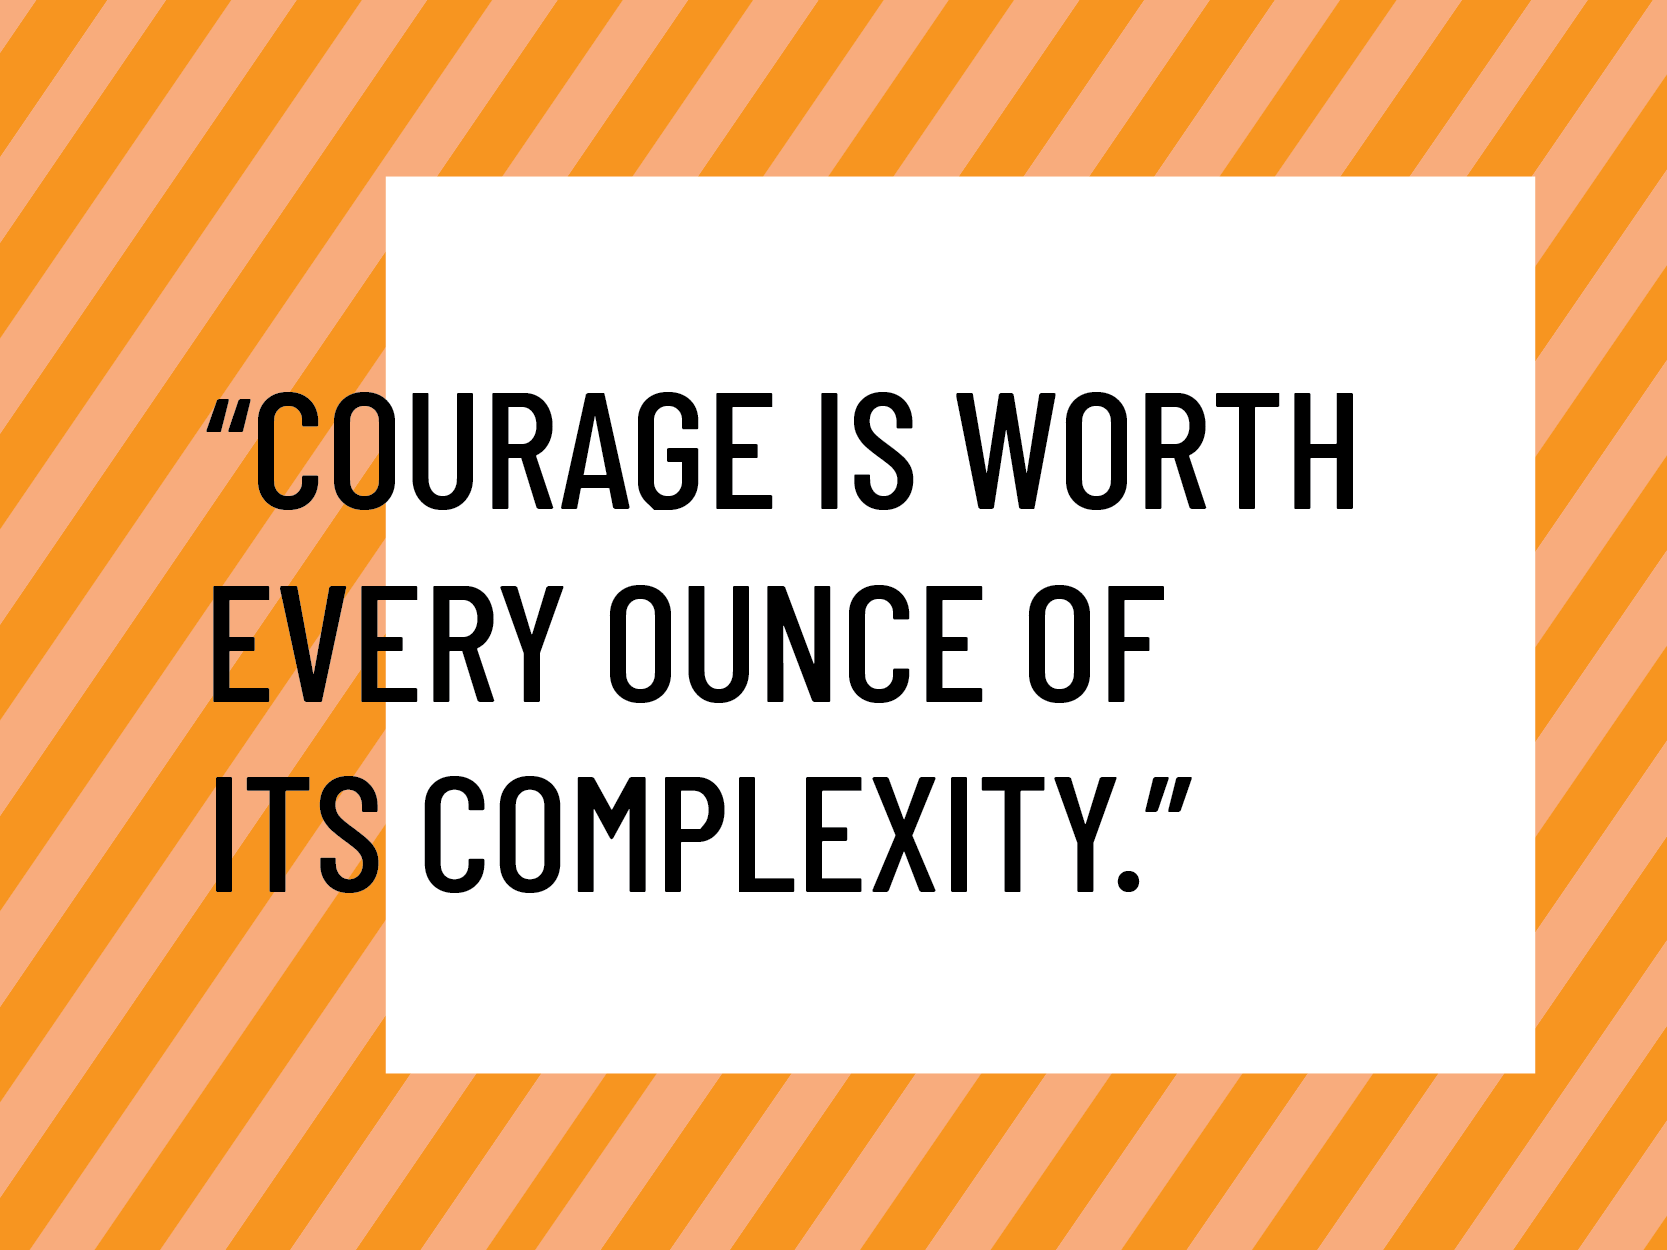 Courage is worth its complexity